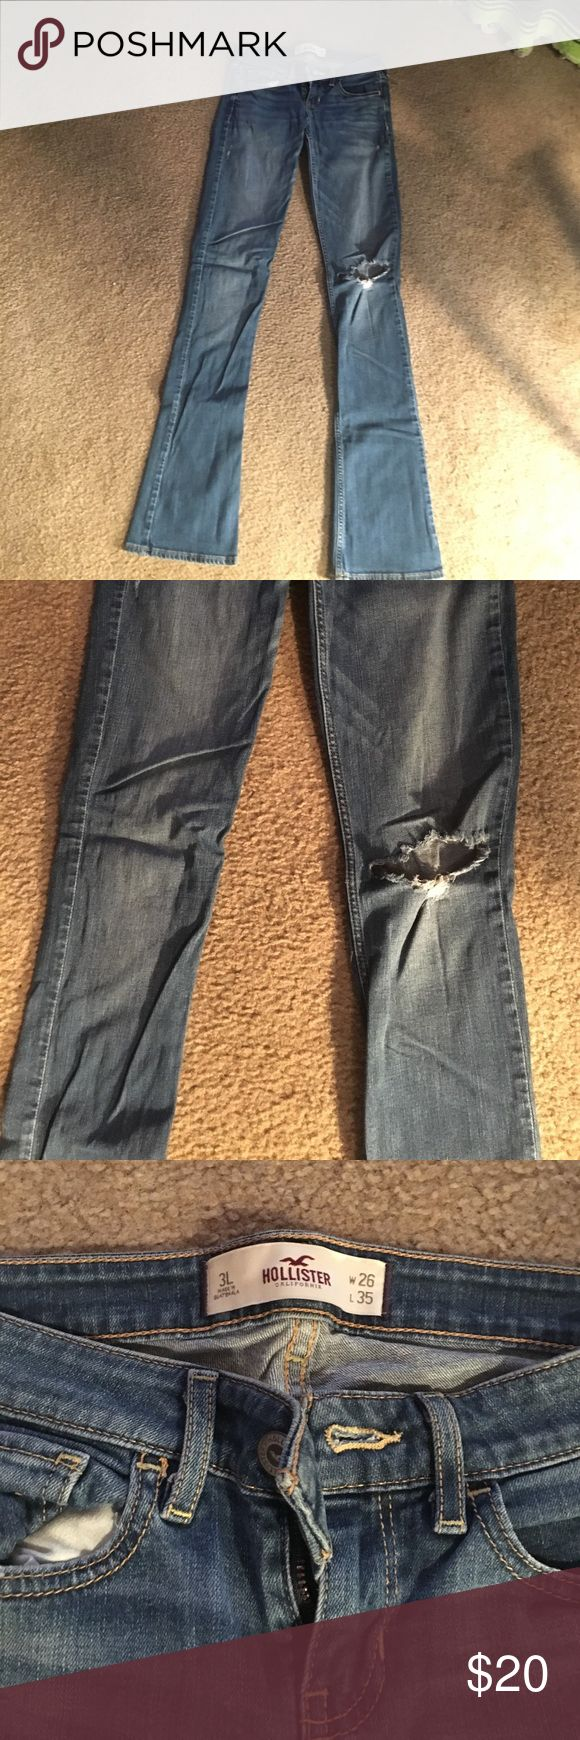 Hollister boot cut jeans Dark wash denim with one holy knee, the bottoms are a little frayed but they have been taken care of. Size 3 long. Very good used condition!! Hollister Jeans Boot Cut